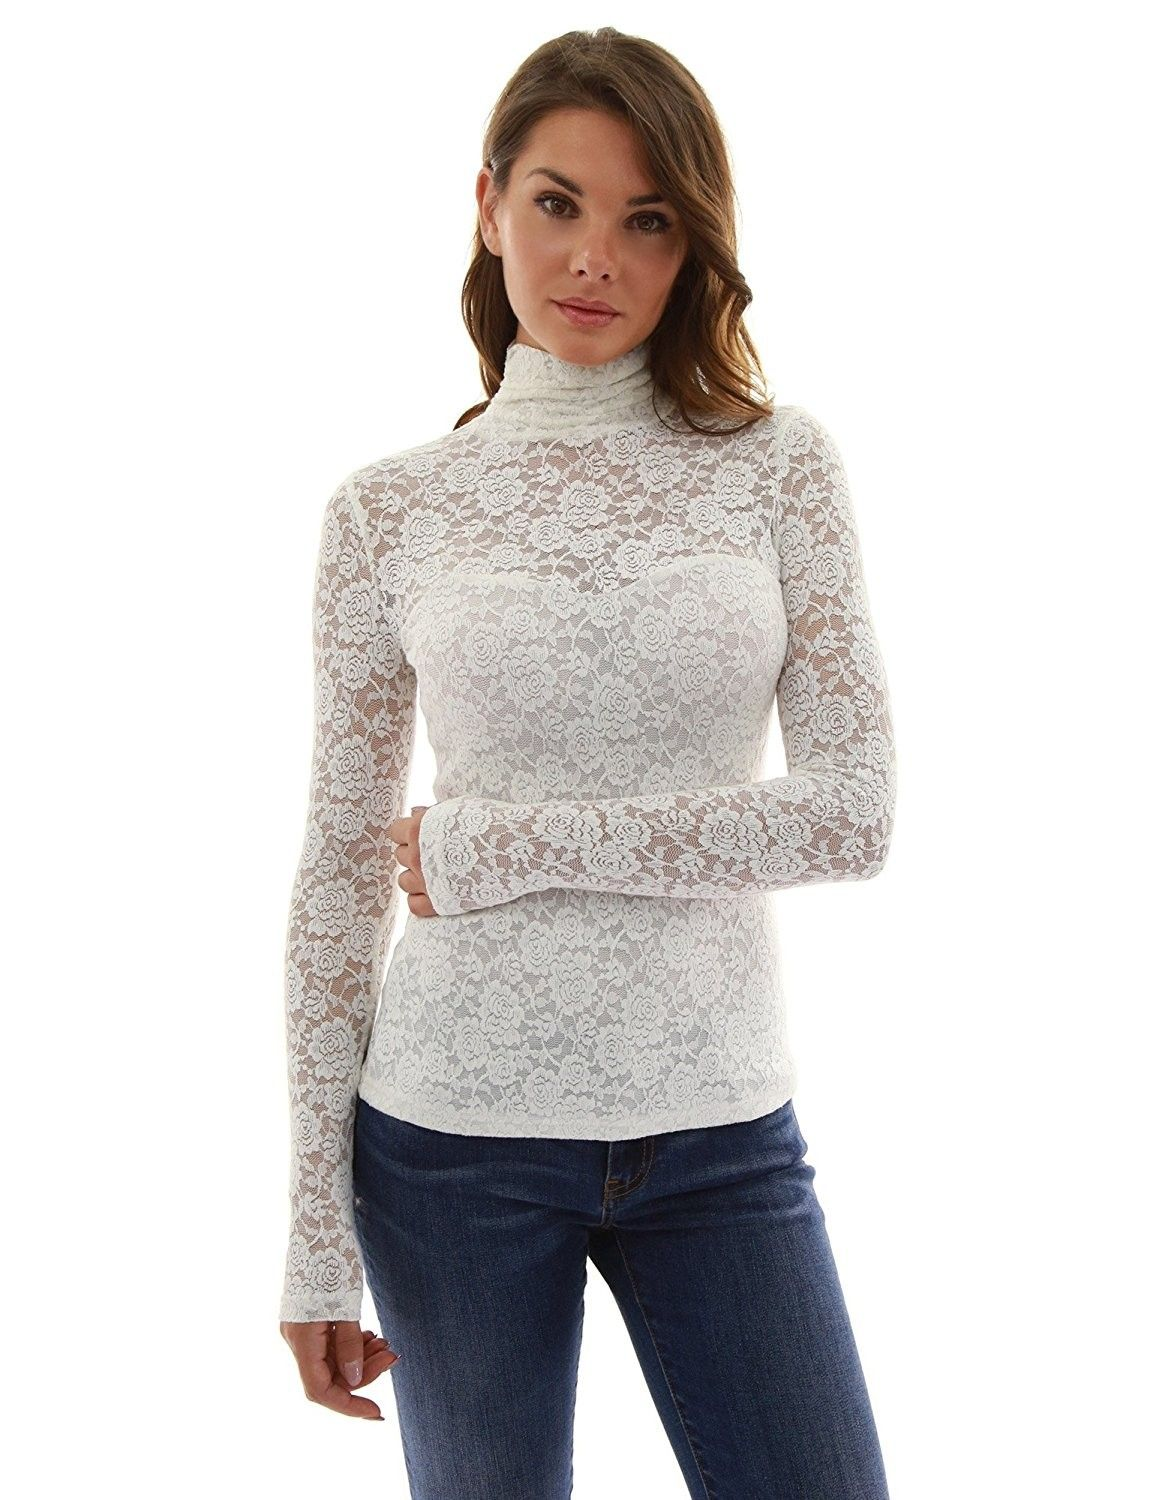 05cd629c Women's Clothing, Tops & Tees, Blouses & Button-Down Shirts, Women's  Turtleneck Sheer Lace Blouse - Off-White - CJ12MY1K085 #Tops #Tees #women  #outfits ...